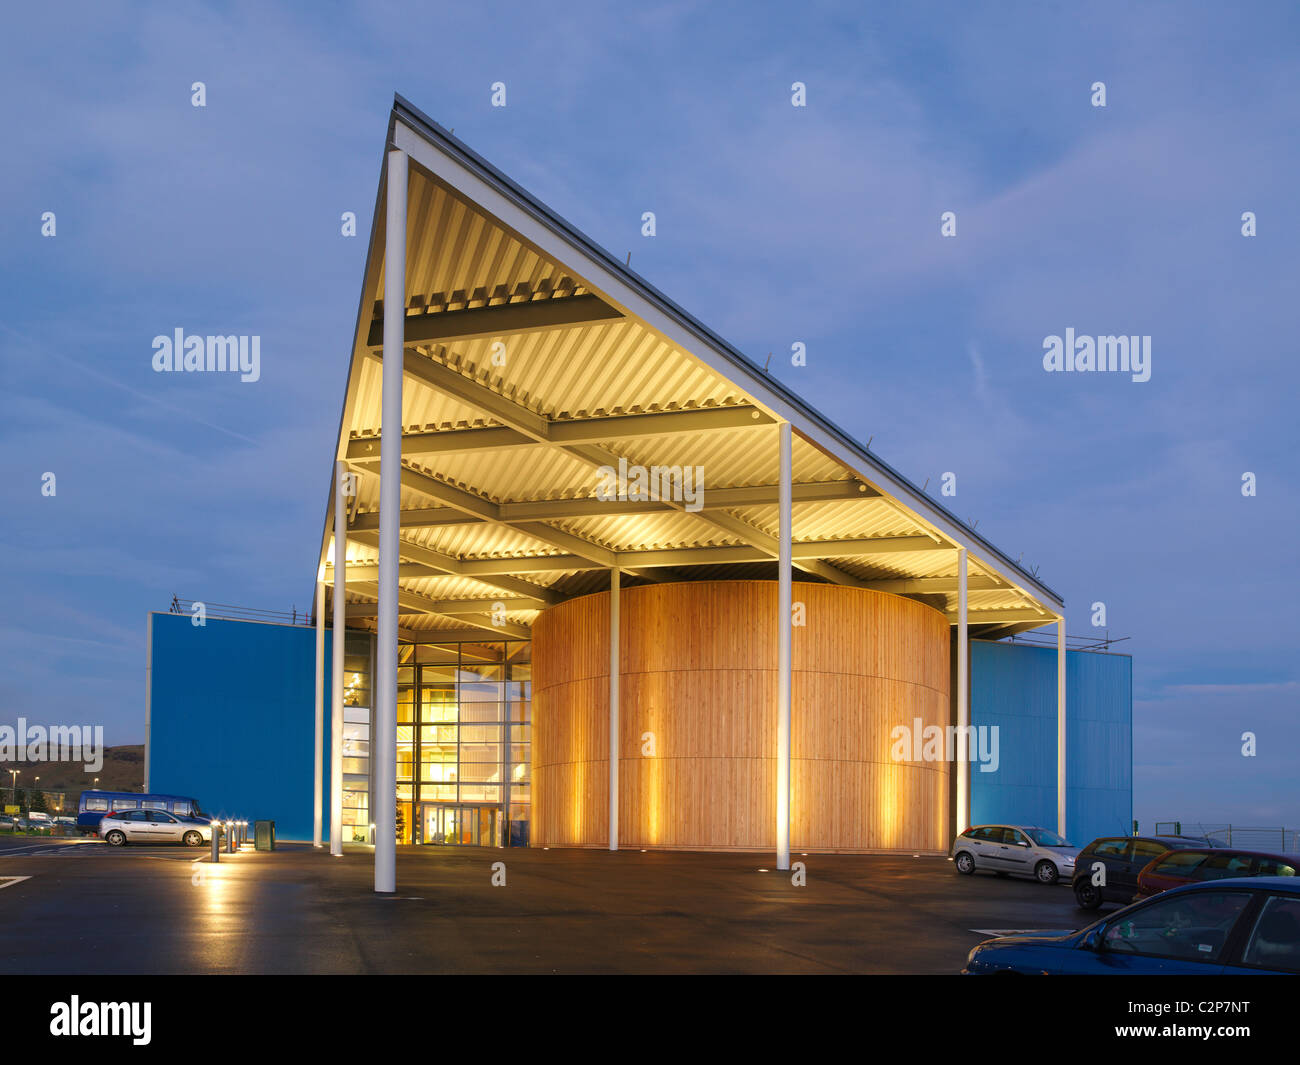 Folkestone Academy Photo Stock